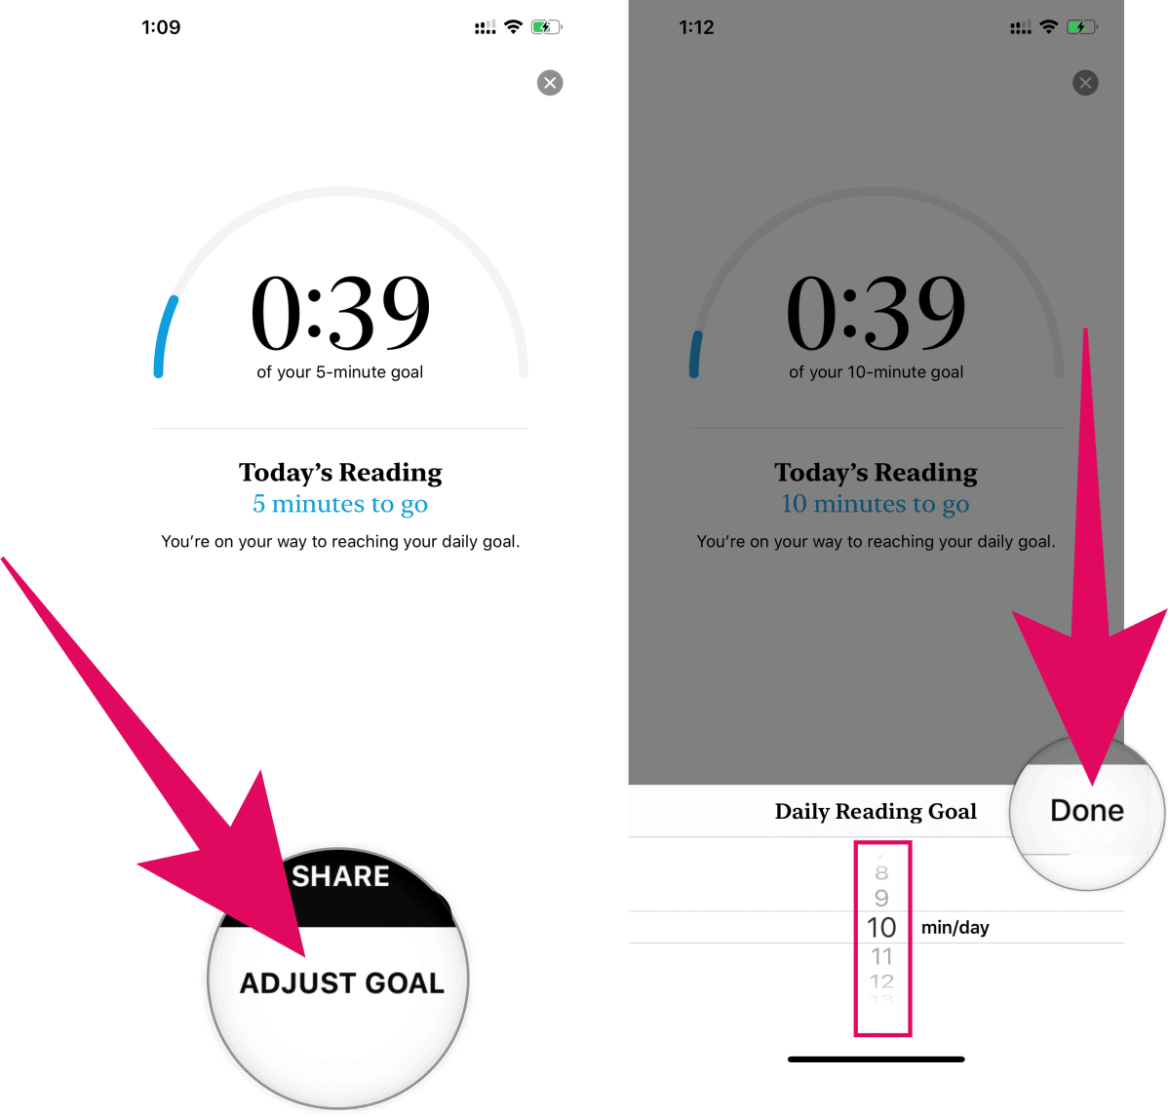 Changing daily reading goal in Apple Books app